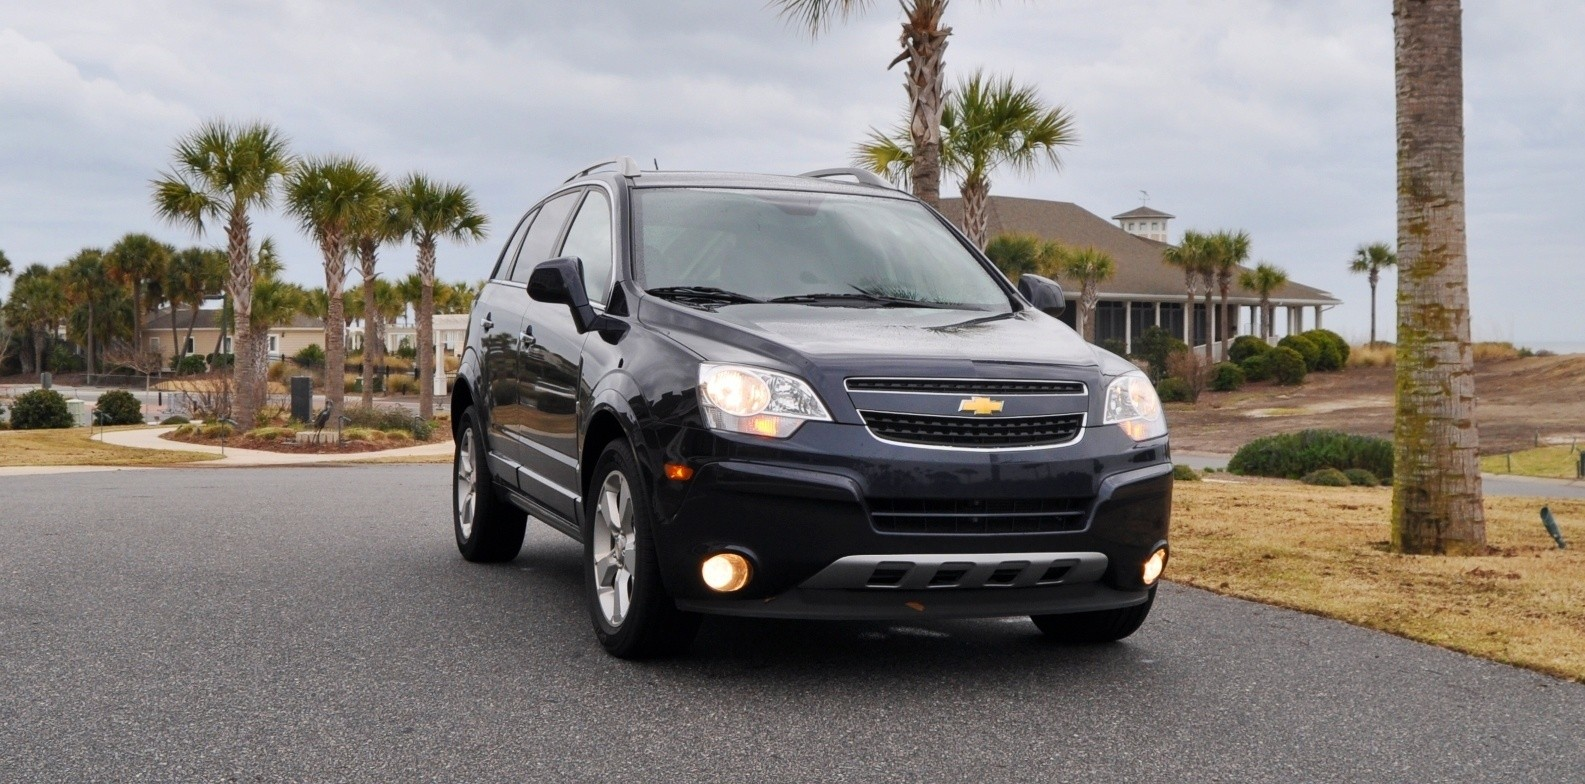 All Chevy chevy captiva 2014 : Three-Part HD Road Test Review + 60 Photos -- 2014 Chevrolet ...